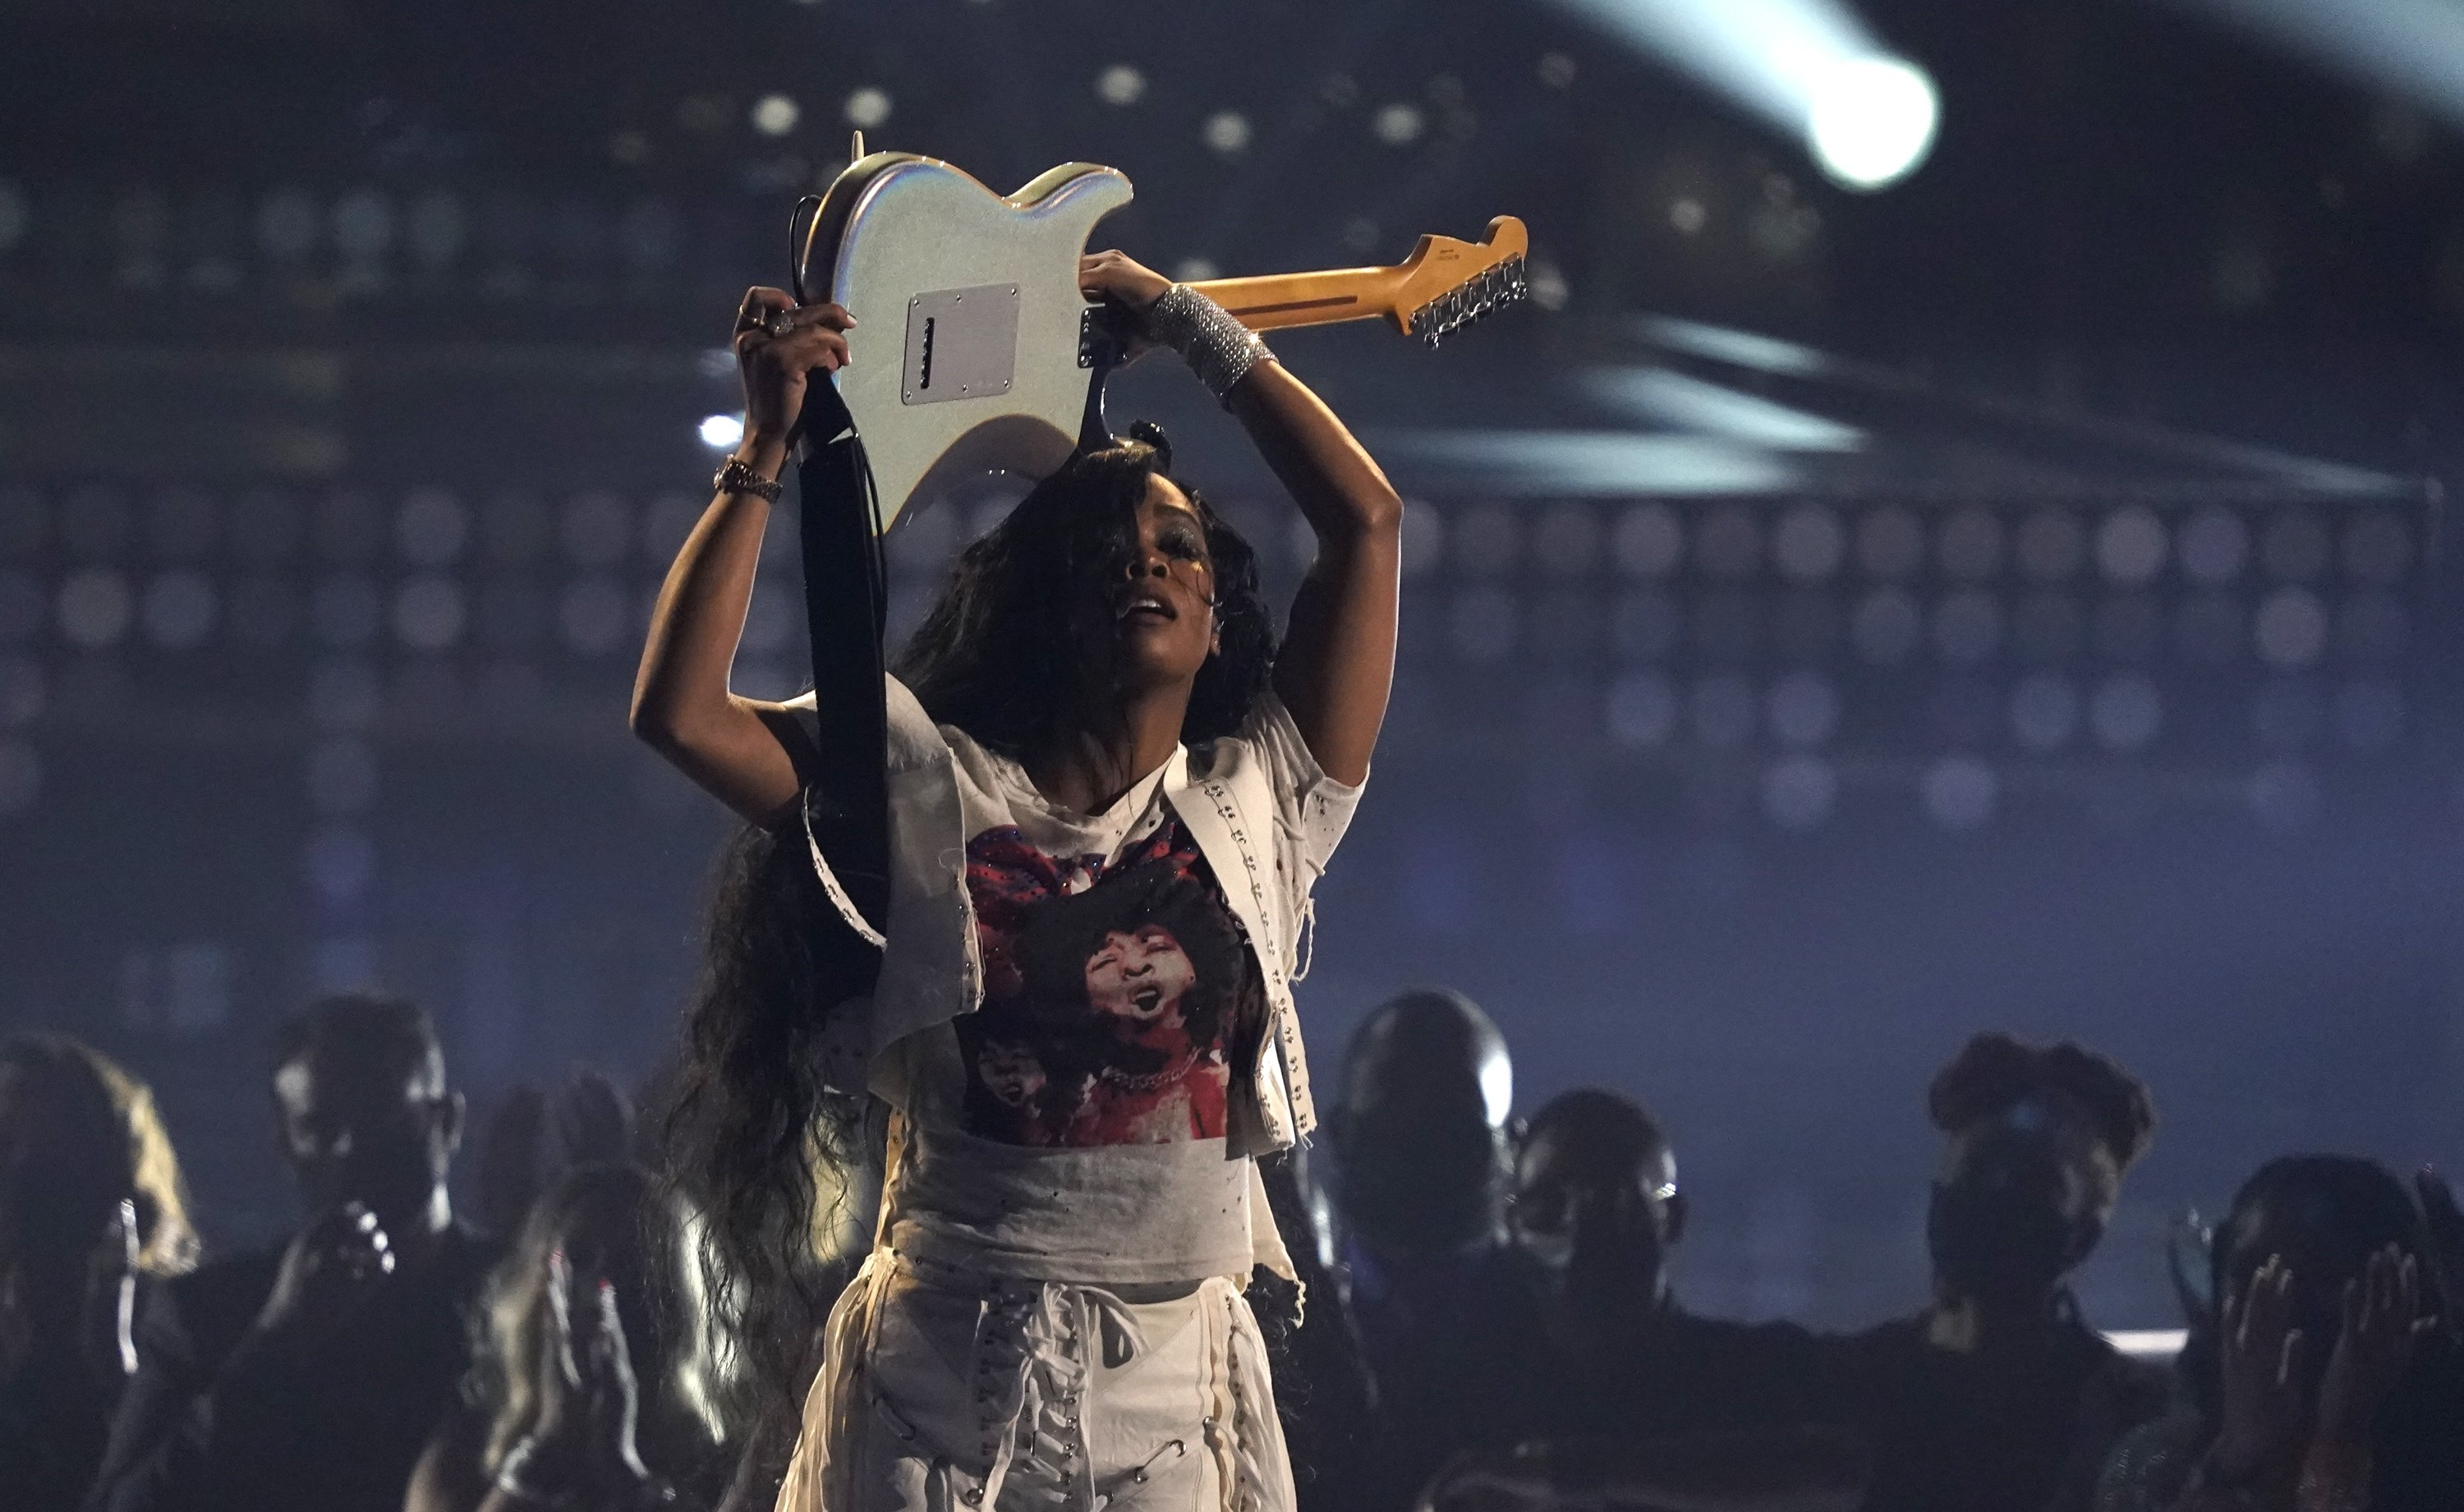 H.E.R. performs at the BET Awards at the Microsoft Theater in Los Angeles, U.S., June 27, 2021. (AP Photo)